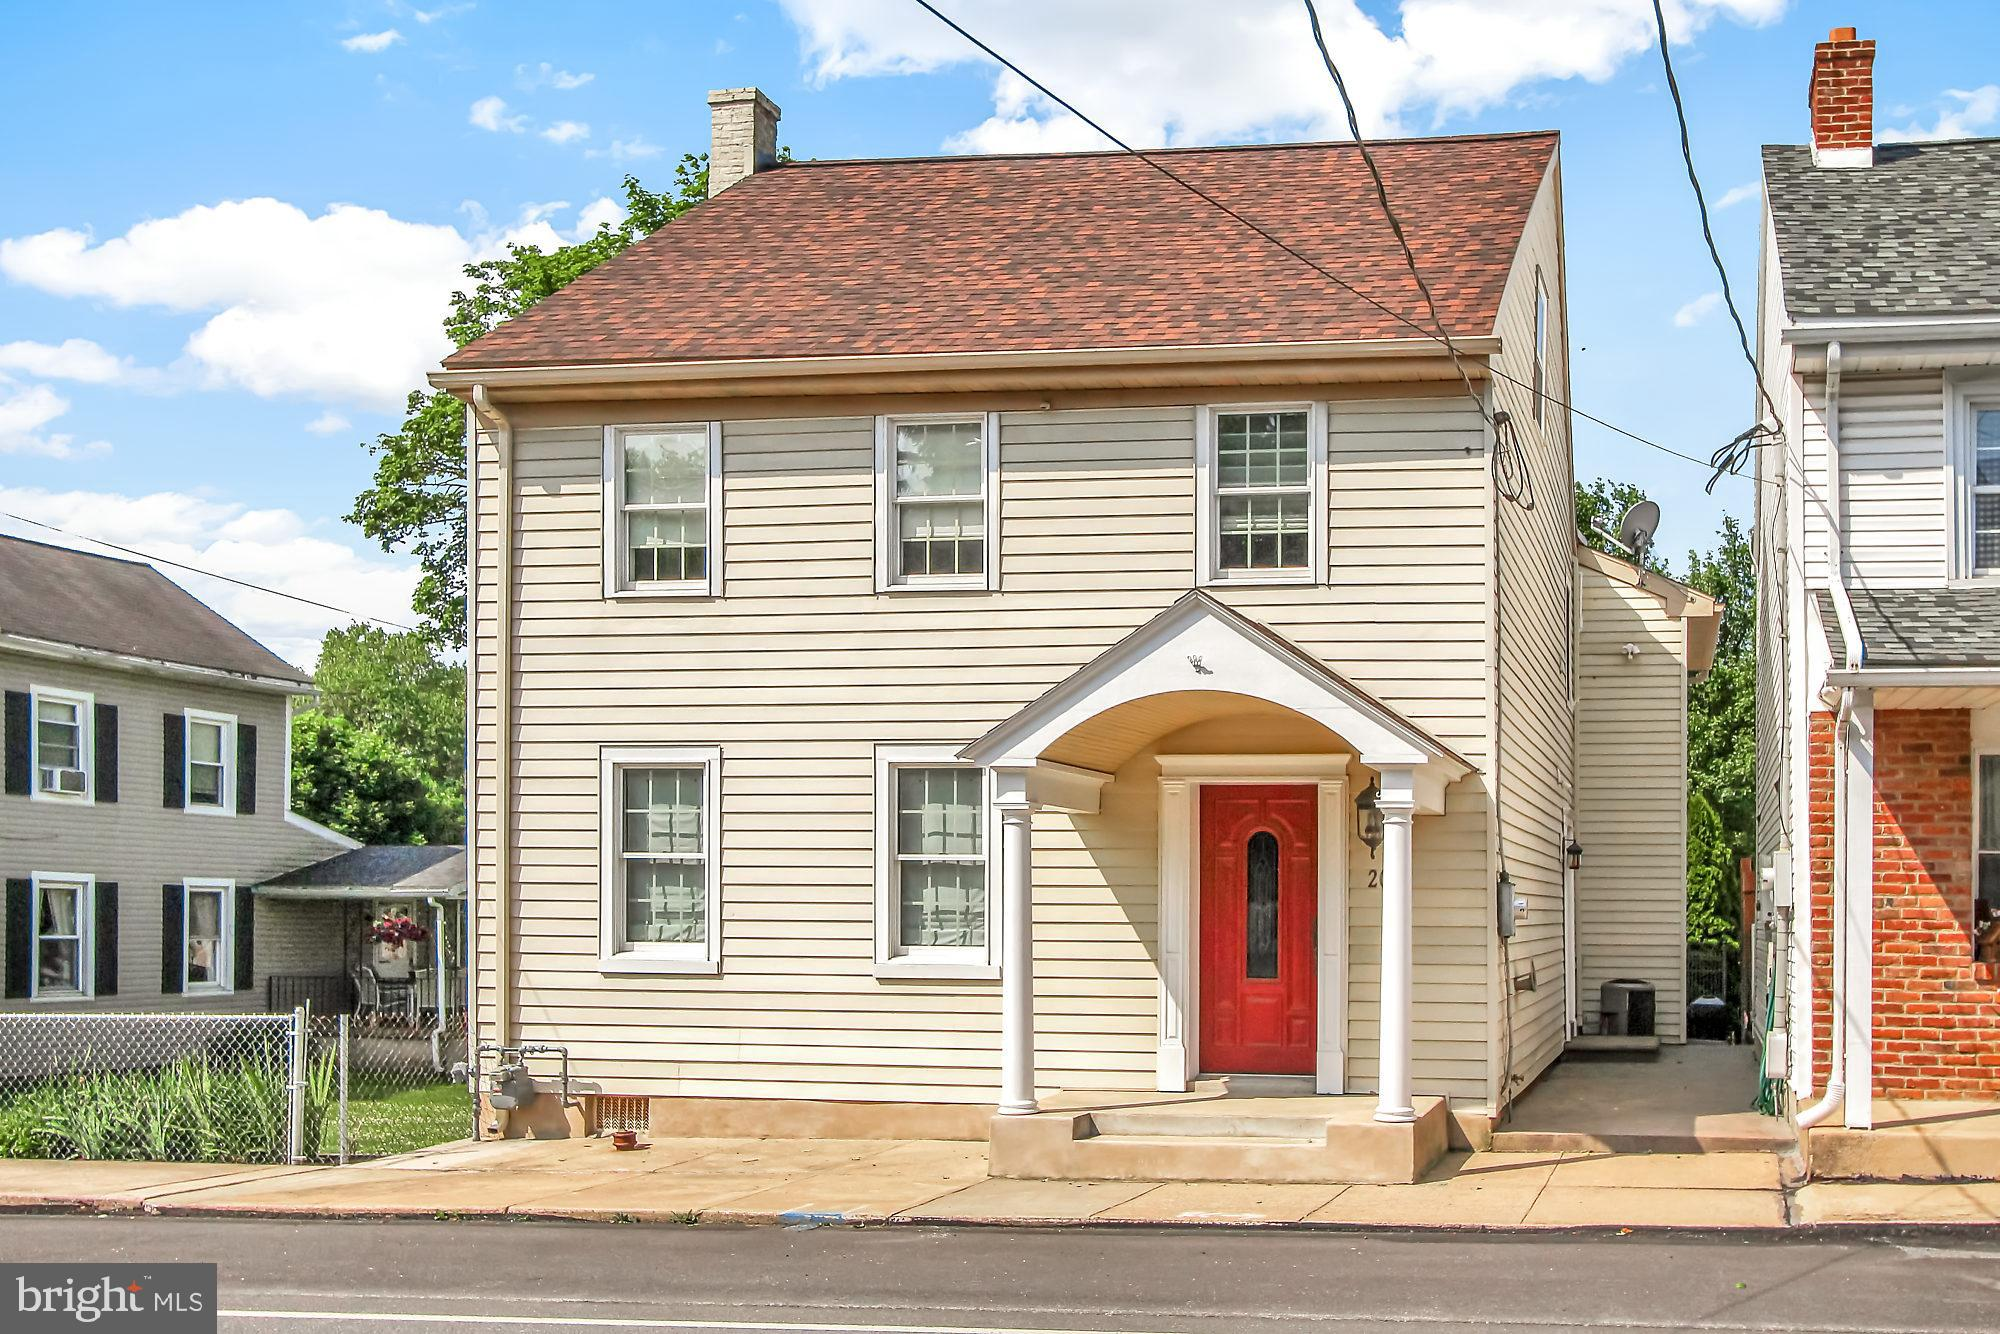 20 N RIVER STREET, MAYTOWN, PA 17550